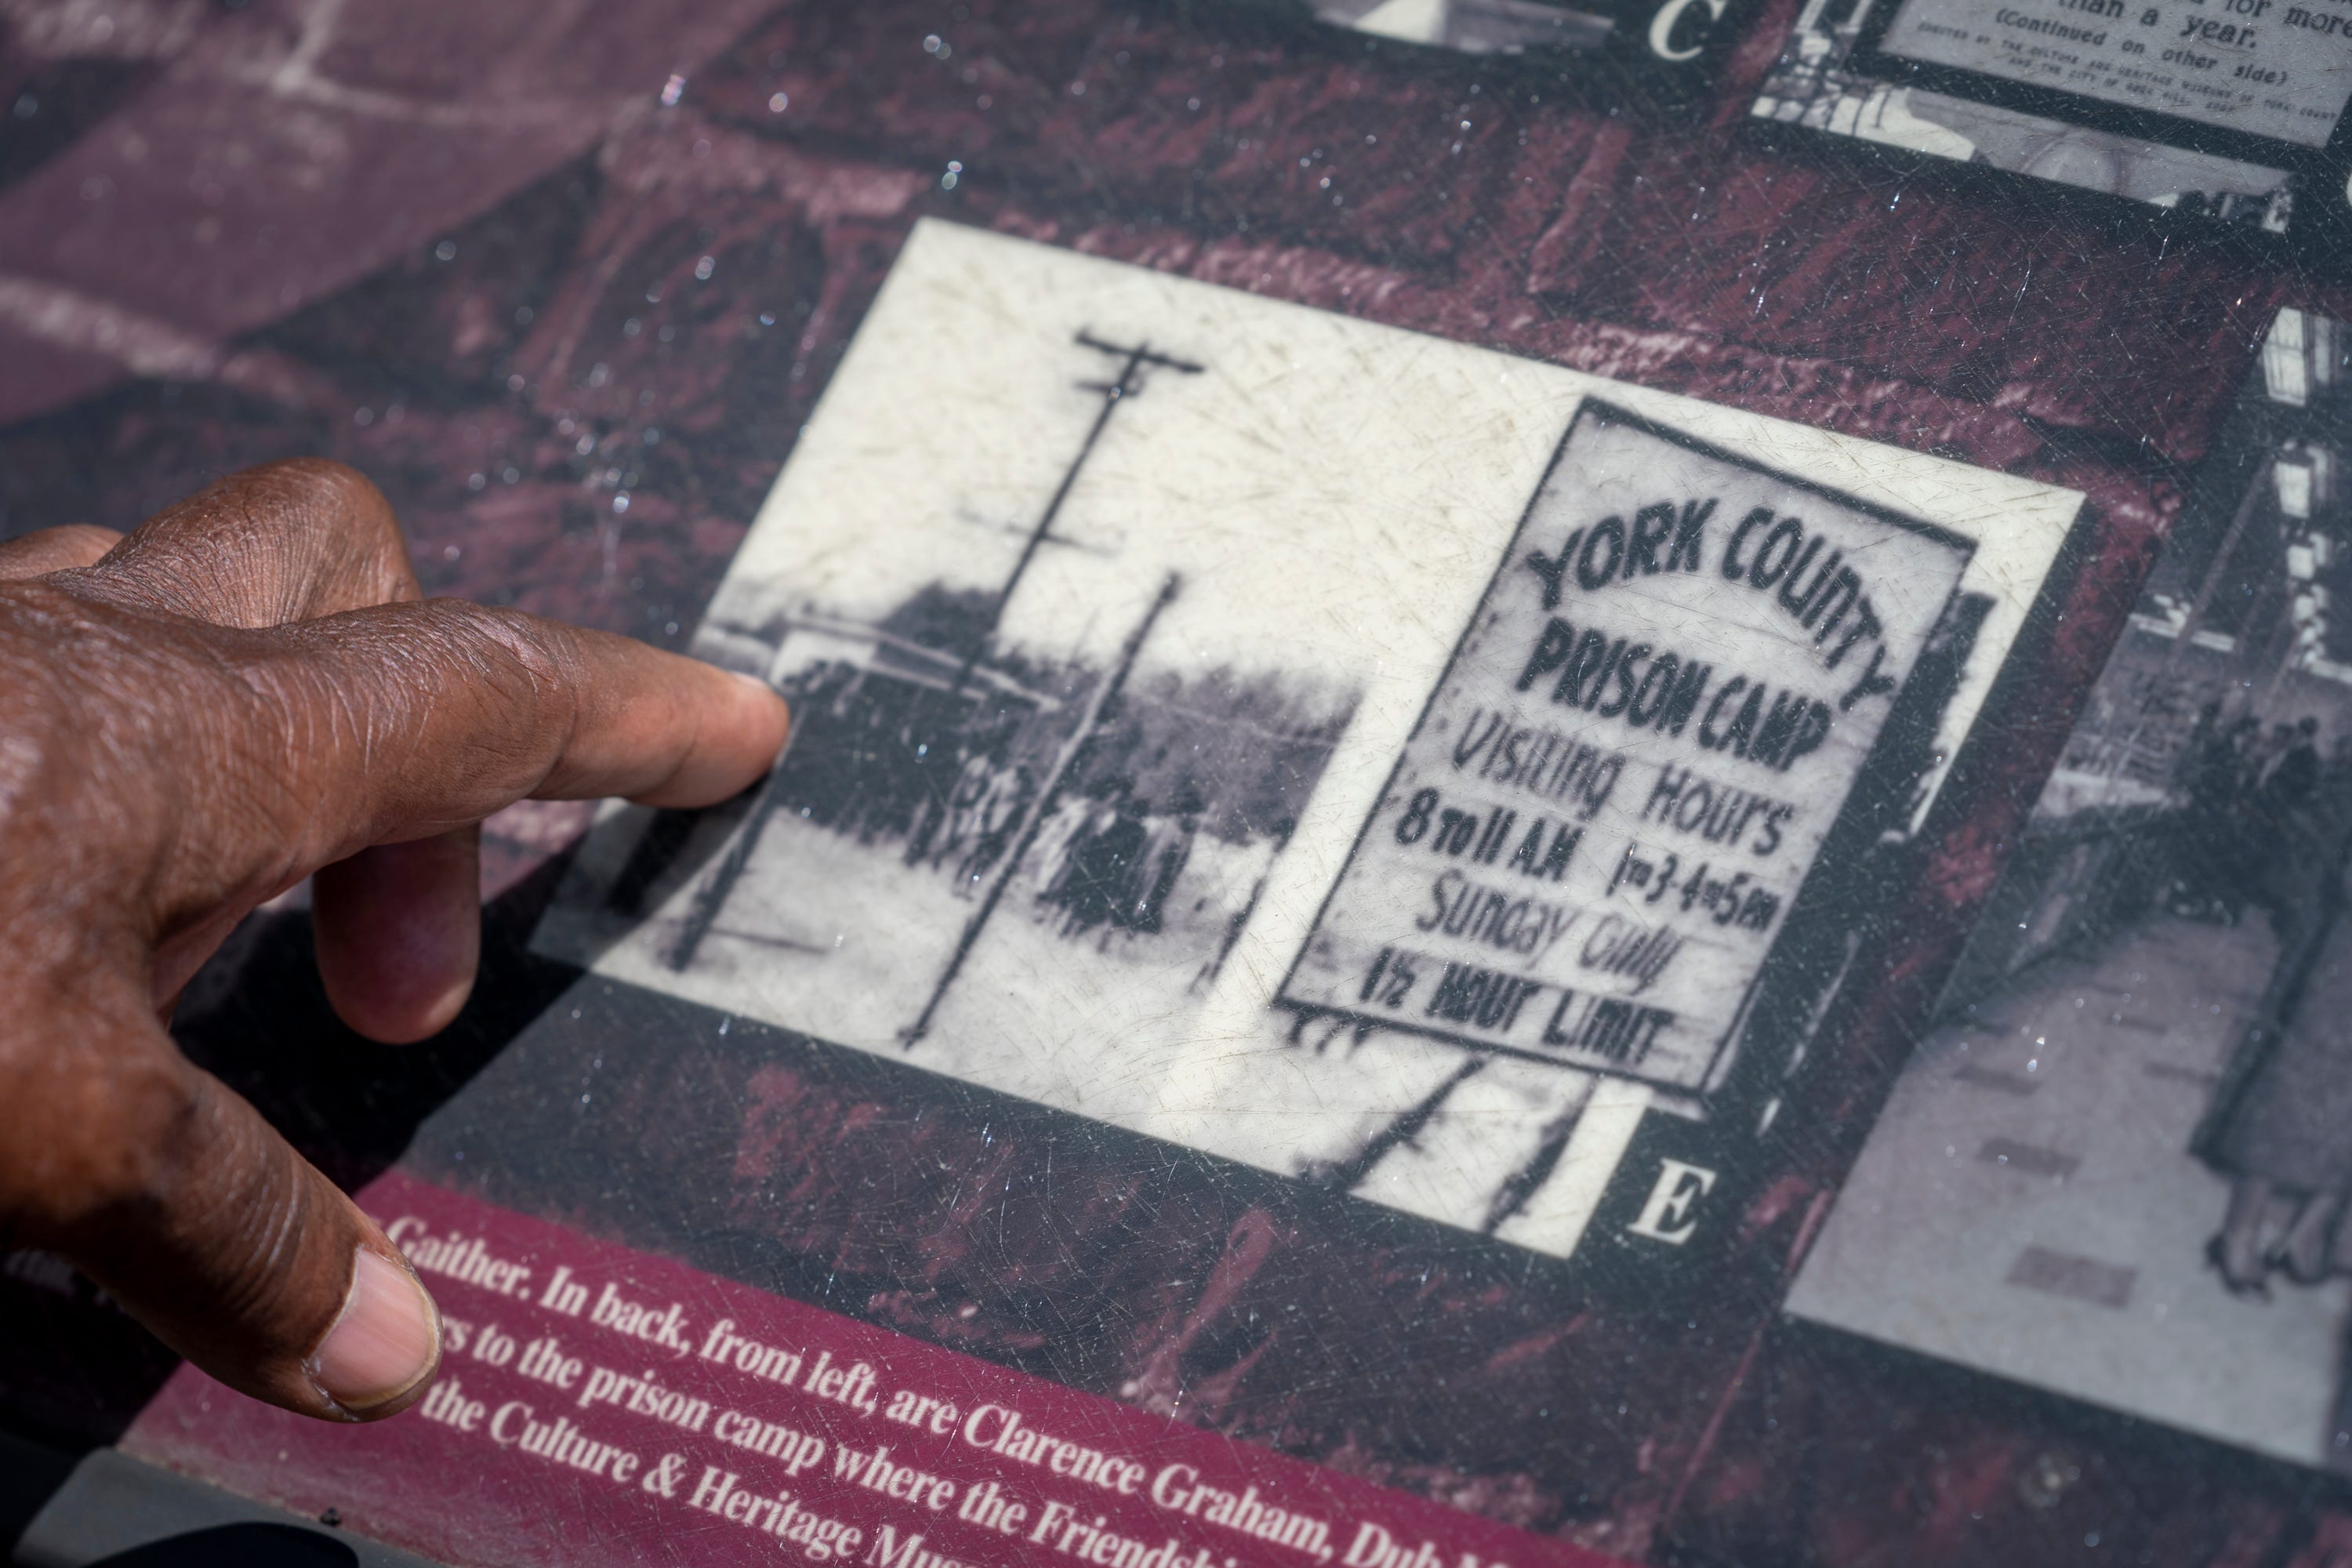 """David Williamson, one of the Friendship Nine, points to a photo of protest outside York County Prison Farm, where he was imprisoned for sitting in at McCrory's lunch counter, in Rock Hill, S.C. on August 12, 2021. On February 1, 1961,nine young civil rights activists were convicted of trespassing for staging a sit-in at a department store lunch counter in Rock Hill, South Carolina. The judge imposed a fine of $100 each or 30 days hard labor on a chain gang. The activists opted for jail time, setting in motion the movement's """"Jail-No-Bail'' strategy to push back against paying fines for fighting segregation. Experts said the strategy became a key tactic in the civil rights movement, including one used by the Freedom Riders. It also draws some parallels to the debate today over the disparate impact of the bail system on people of color, experts and veteran said."""